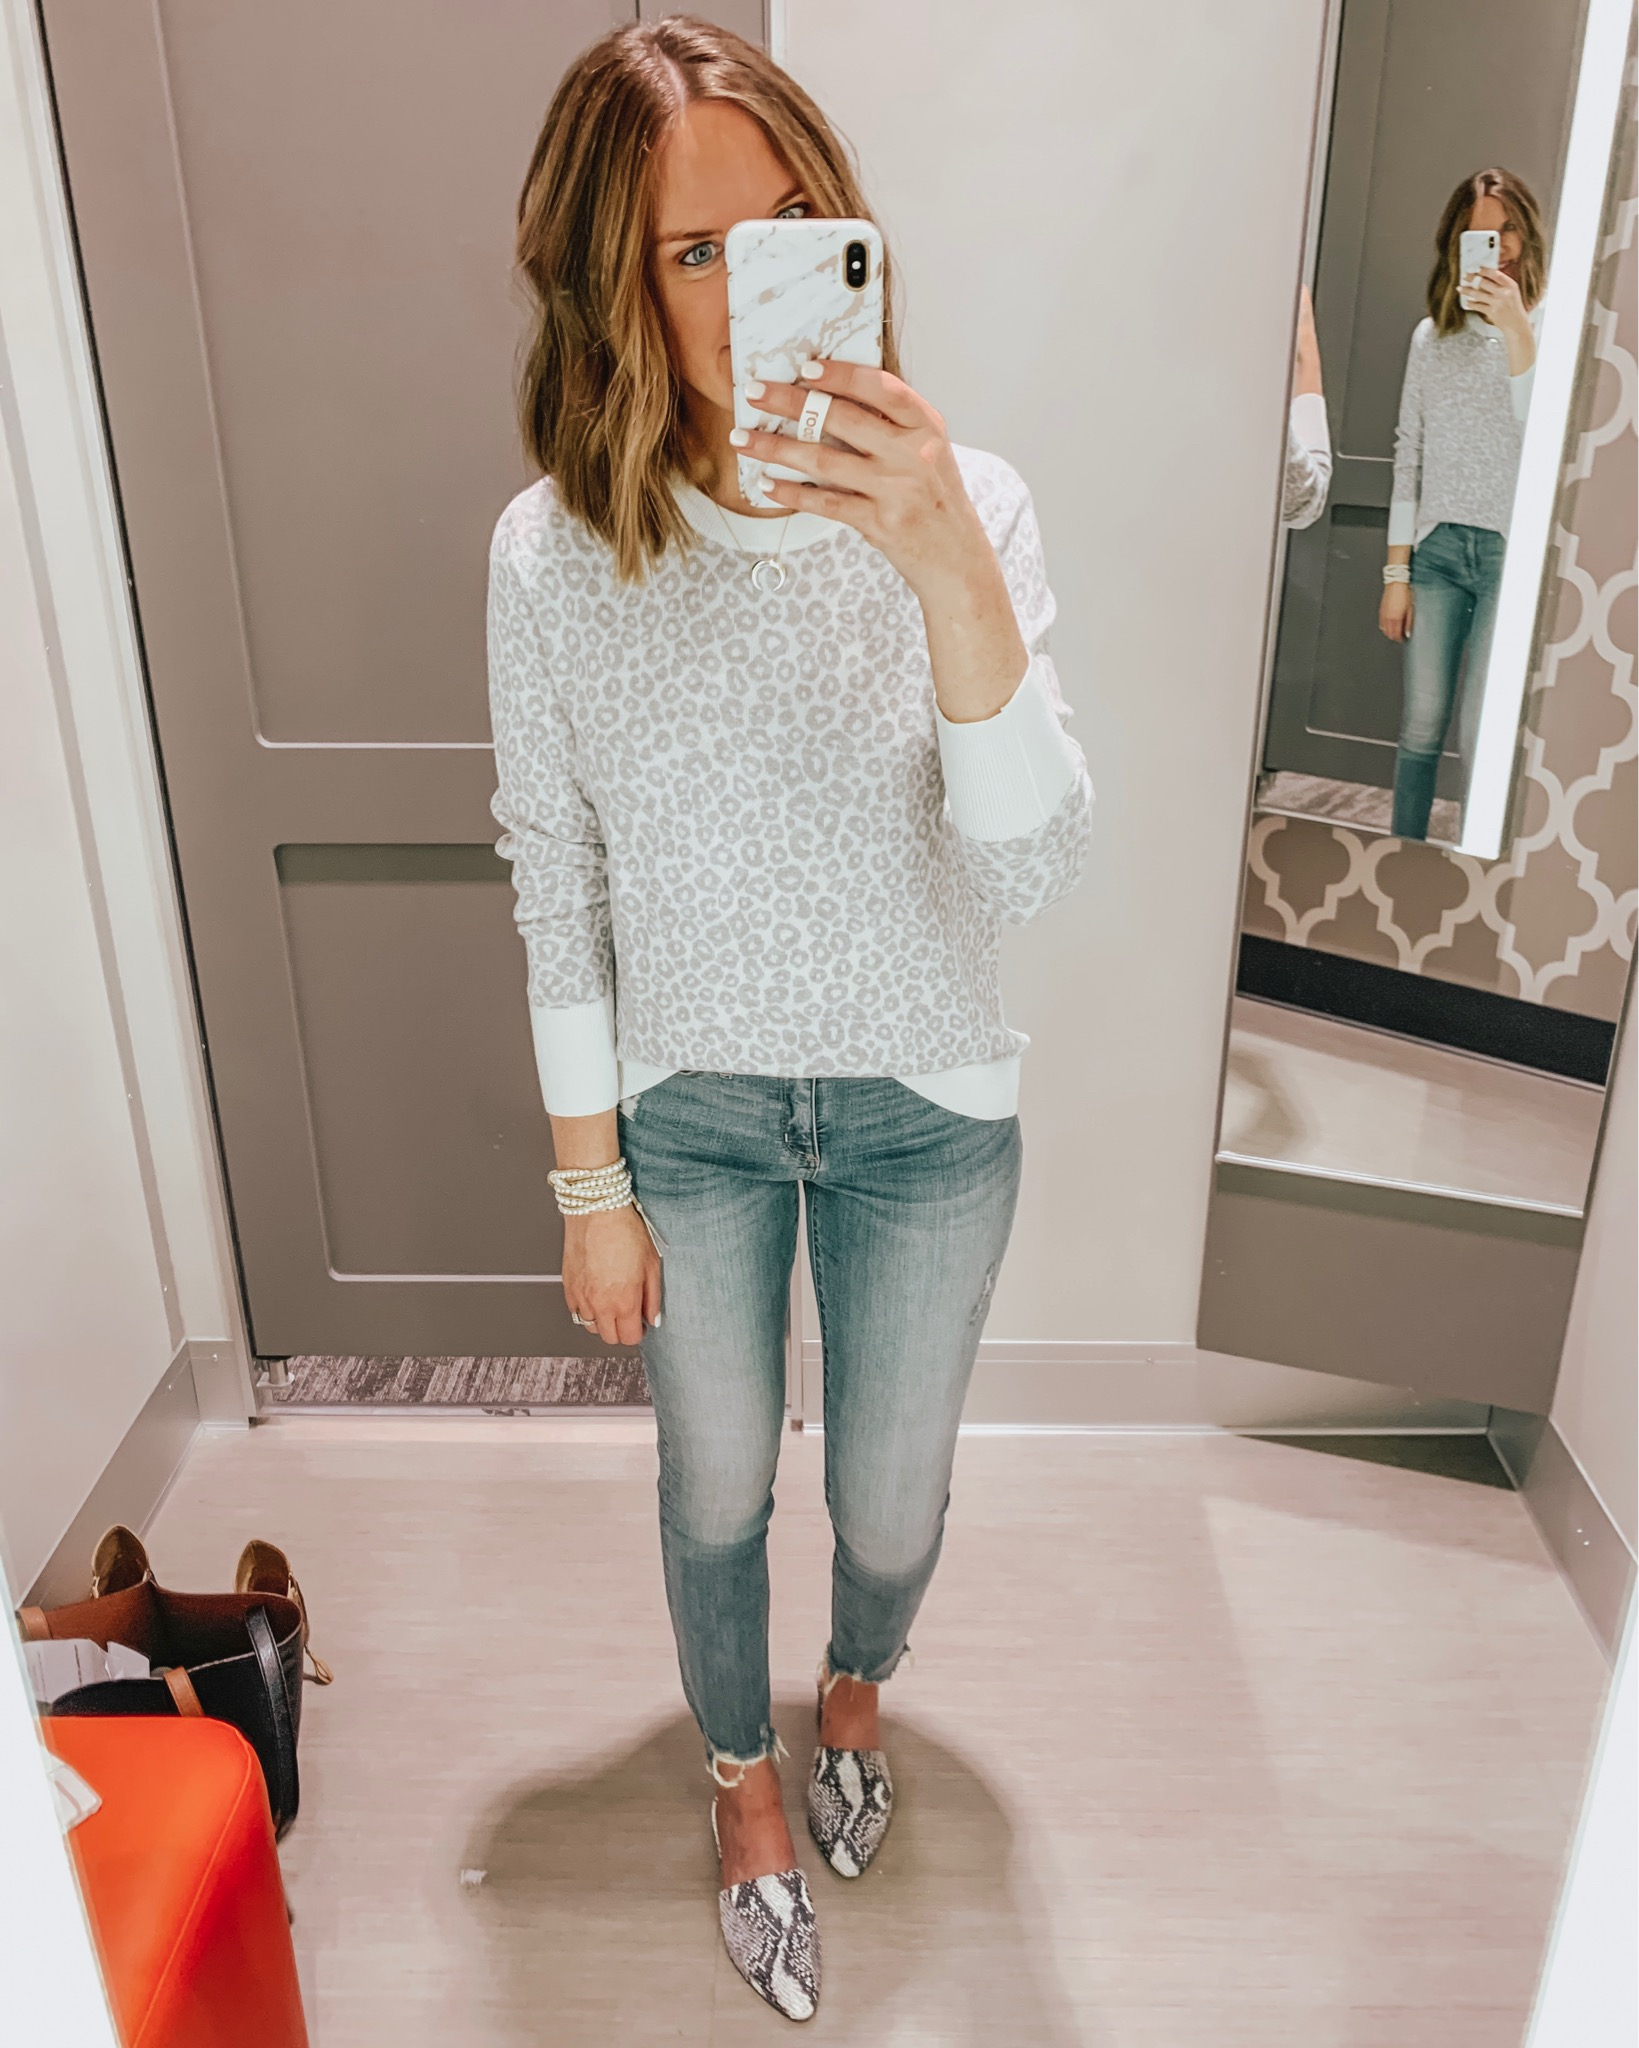 Target fall fashion preview 2019, grey leopard sweater